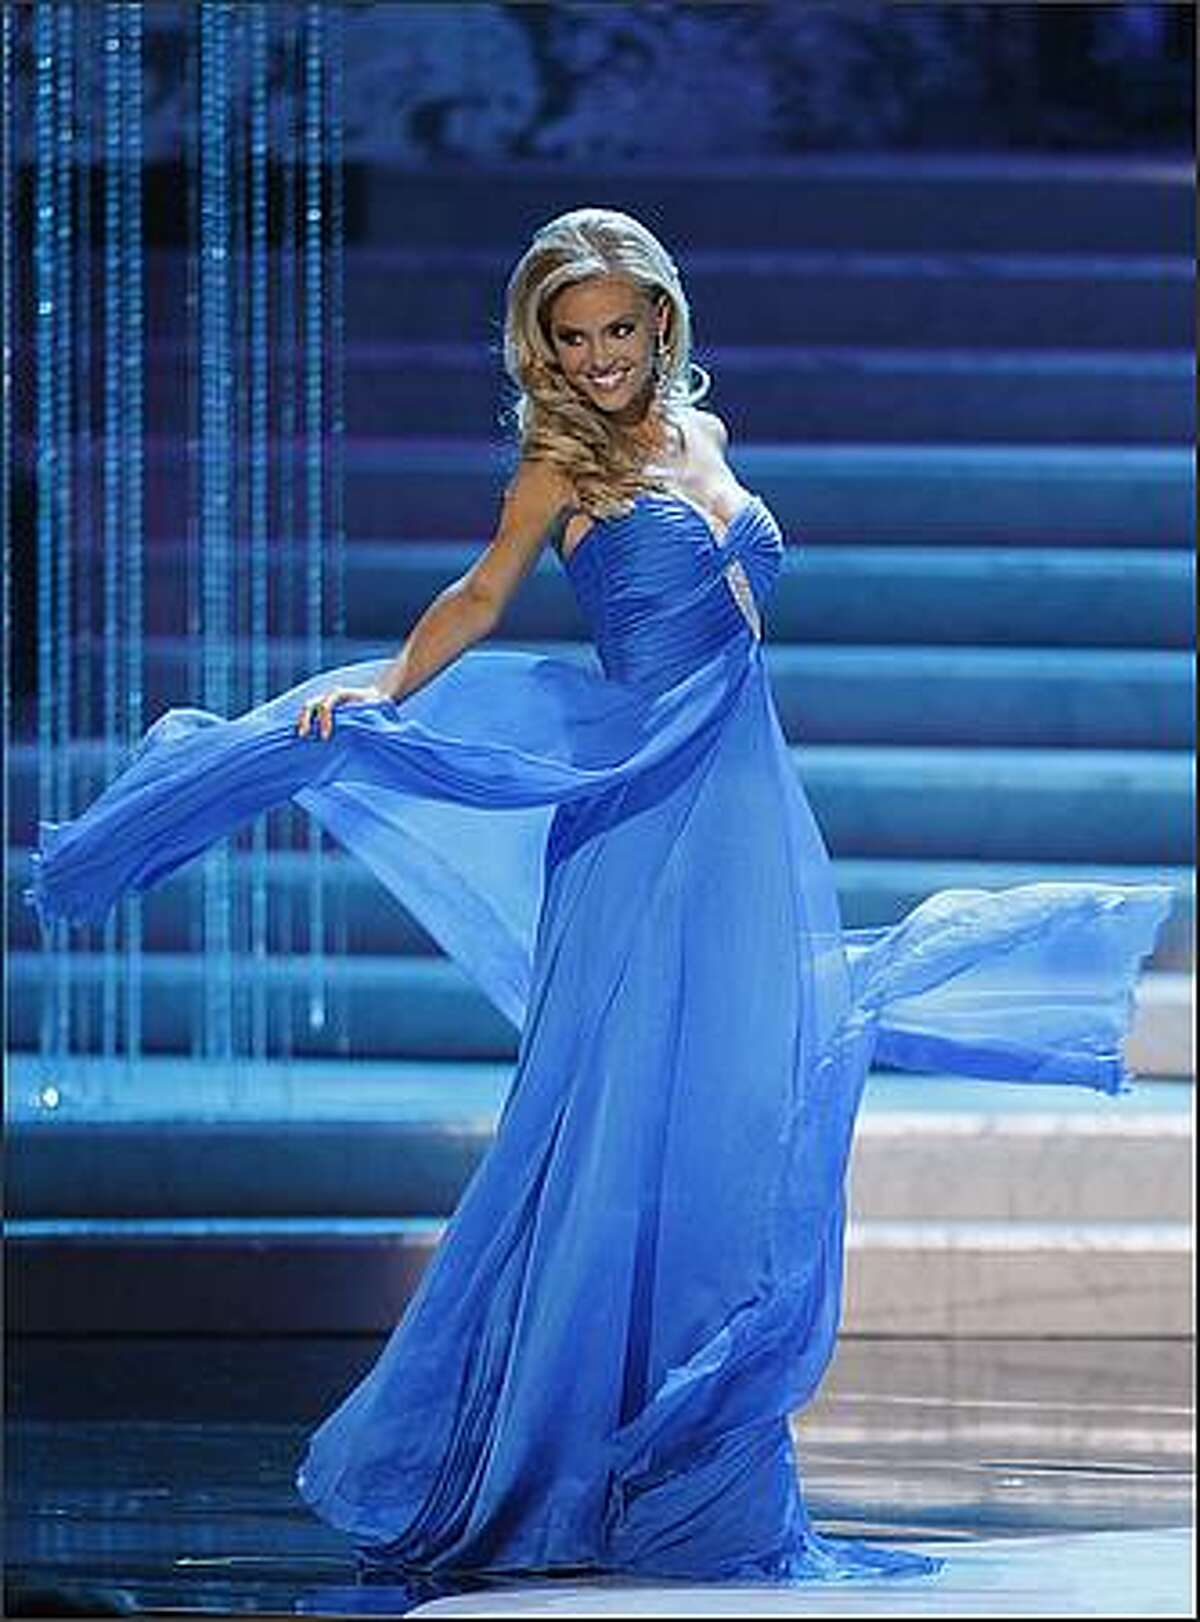 Miss North Carolina Kristen Dalton competes during the Miss USA Pageant on Sunday in Las Vegas. Dalton was later crowned Miss USA. (AP Photo/Eric Jamison)